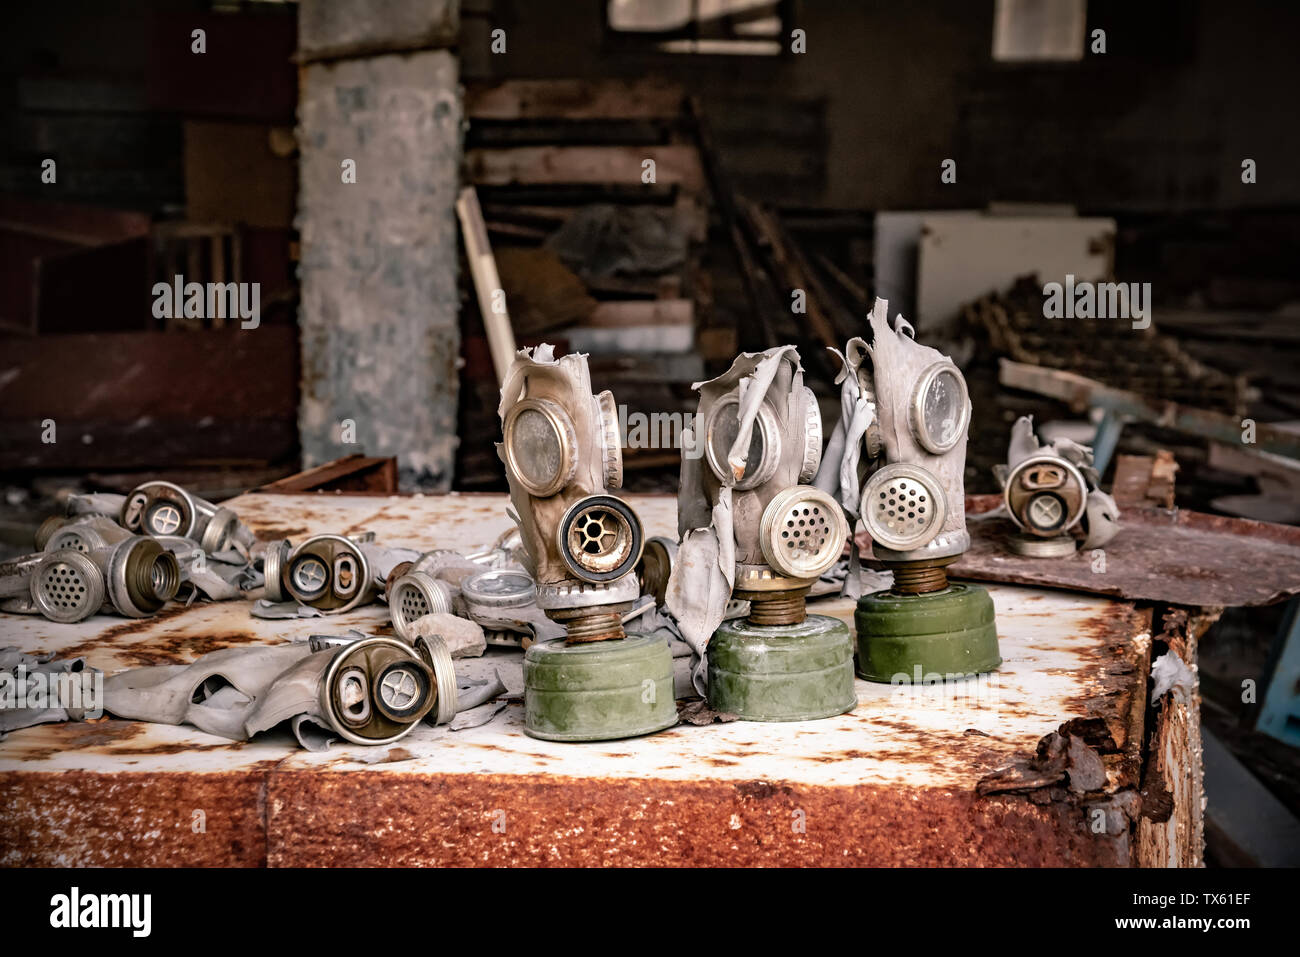 Old Gas mask in settlement, Chernobyl Exclusion Zone, Ukraine - Stock Image